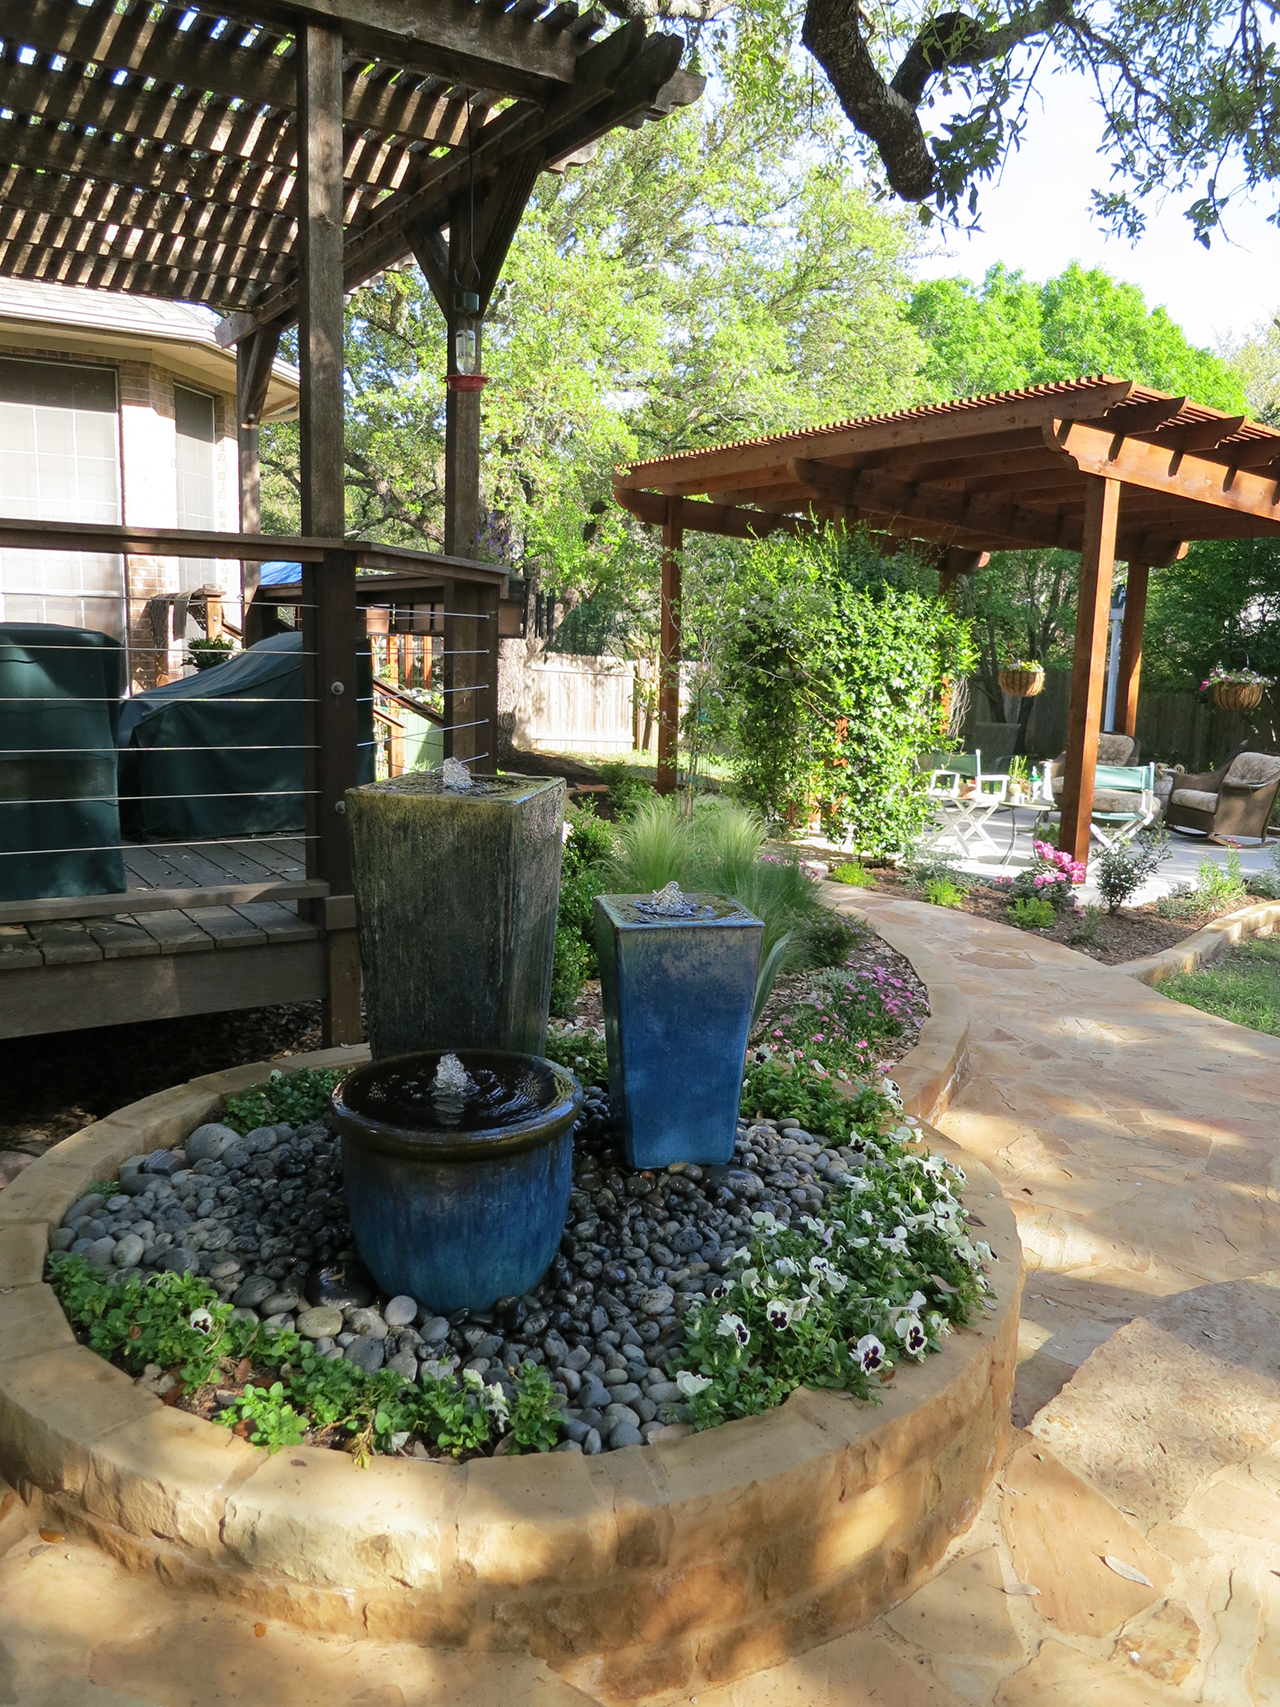 50 Best Backyard Landscaping Ideas and Designs in 2020 on Best Backyard Landscaping id=72587